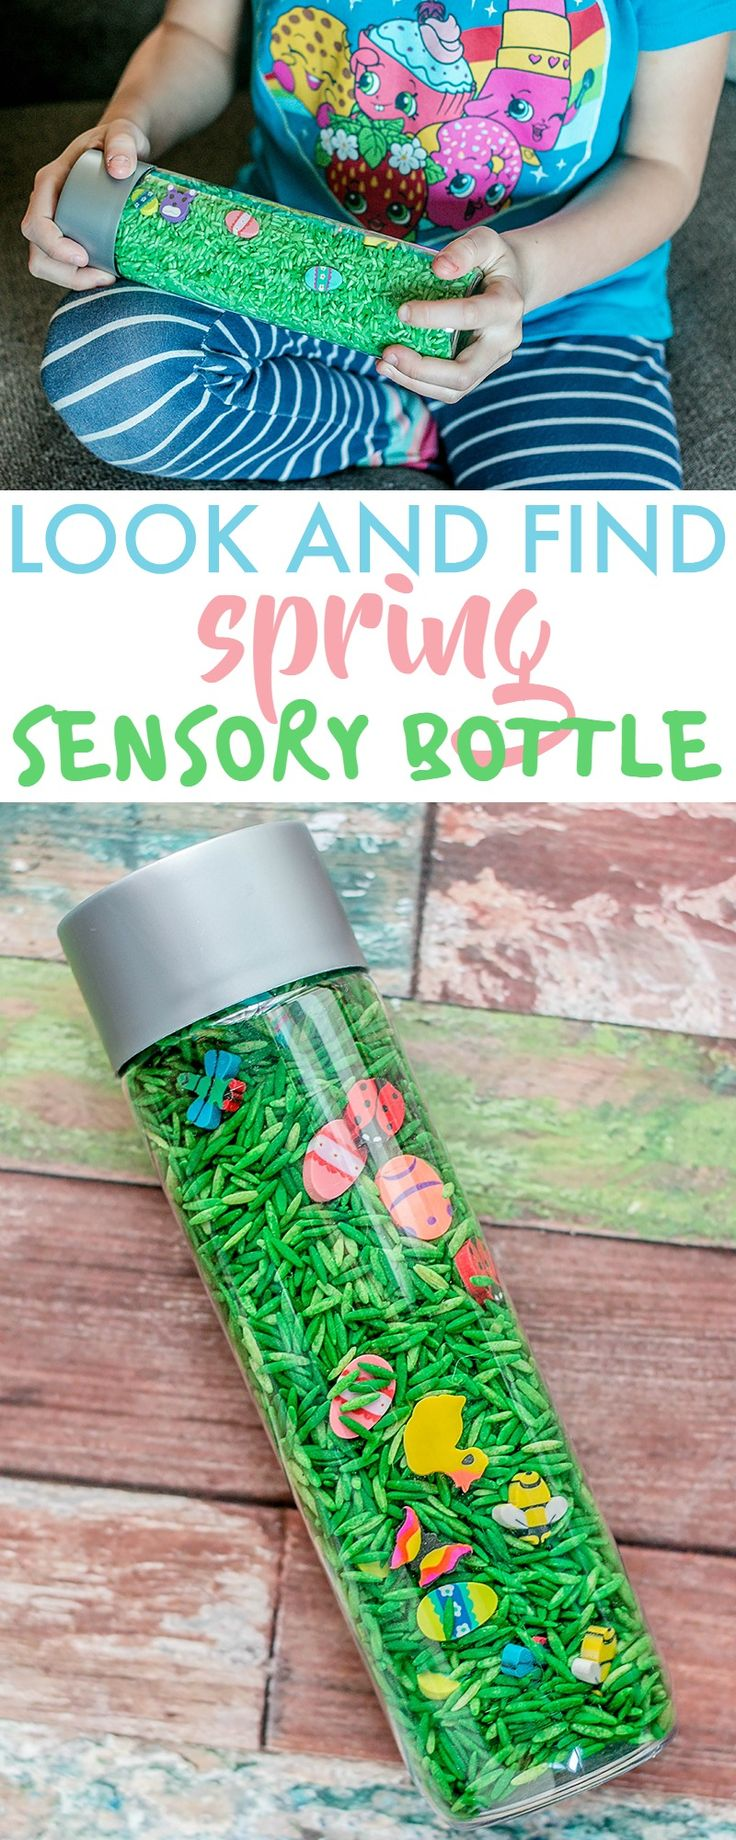 This Look and Find Spring Sensory Bottle is fun & easy to make and creates a fun, sensory, tactile experience. Can also be designed as a game for all ages. craft inspired by #TumbleLeaf Spring-a-ling Surprise Amazon #ad https://www.730sagestreet.com/spring-sensory-bottle/